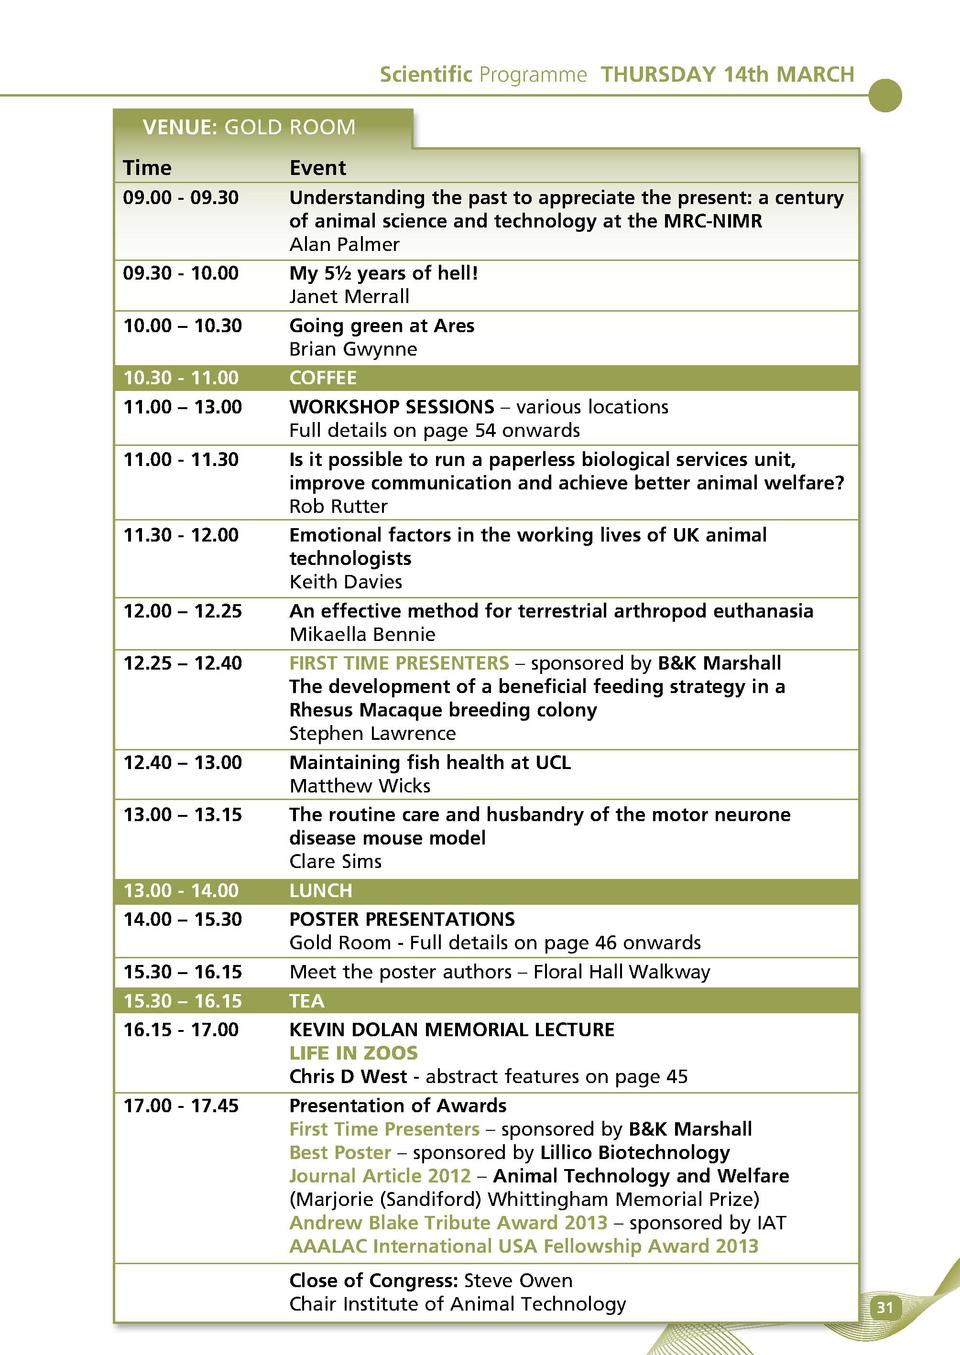 Scientific Programme THURSDAY 14th MARCH VENUE  GOLD ROOM Time Event 09.00 - 09.30   Understanding the past to appreciate ...